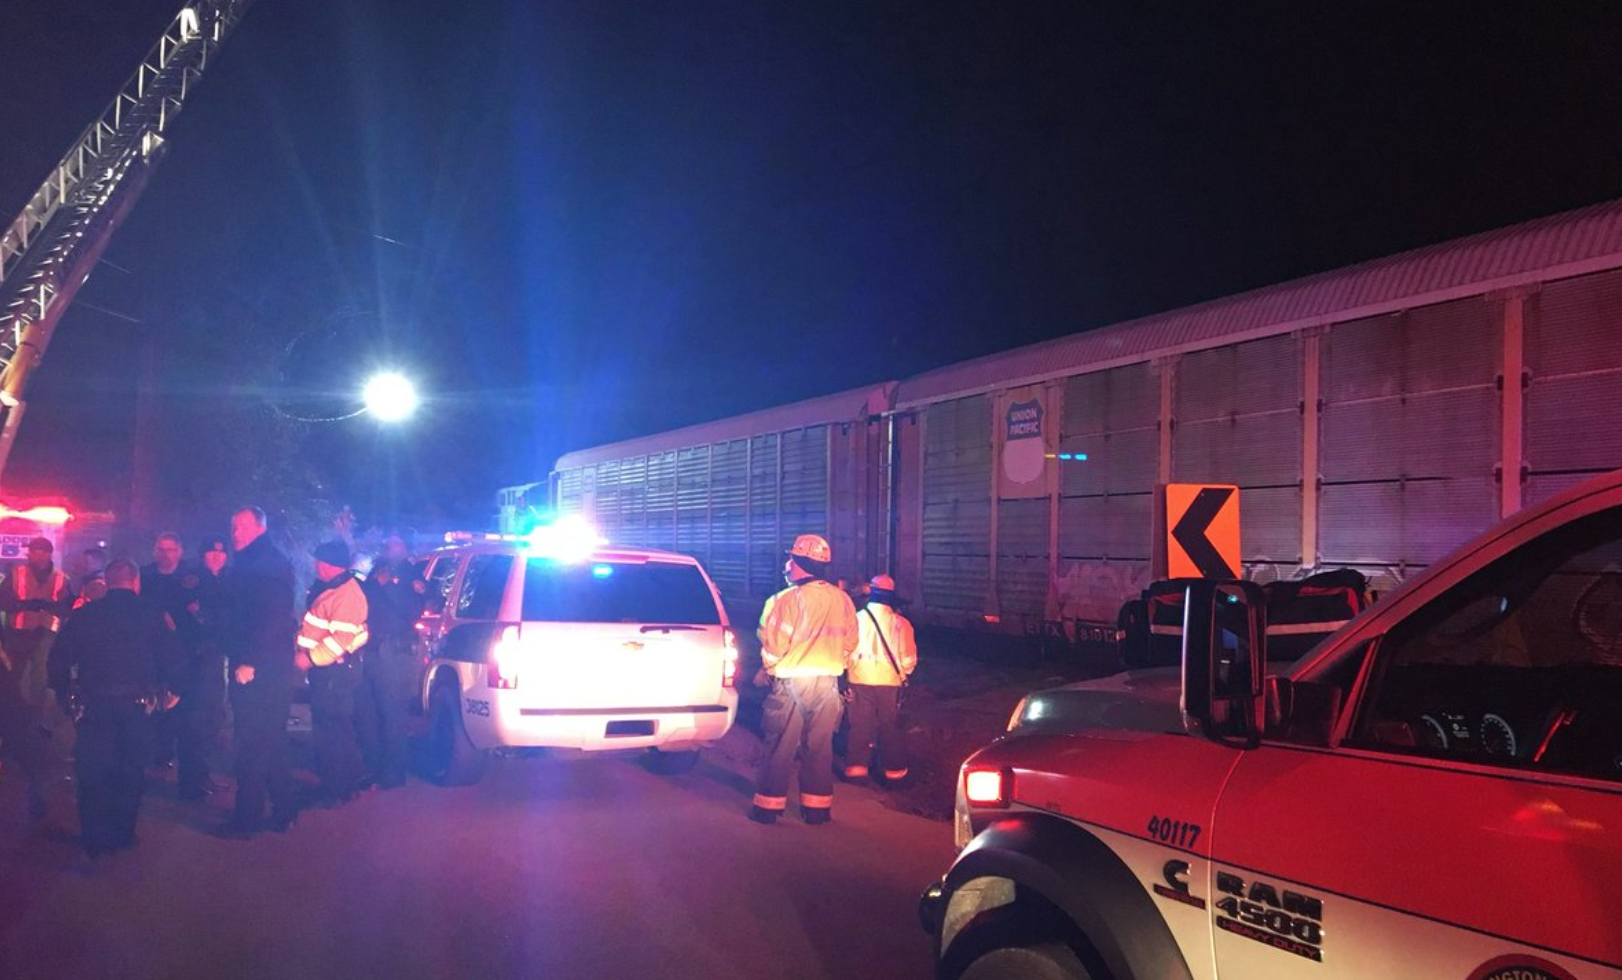 South Carolina Train Crash – At Least Two Dead, 50 Injured, Reports Say